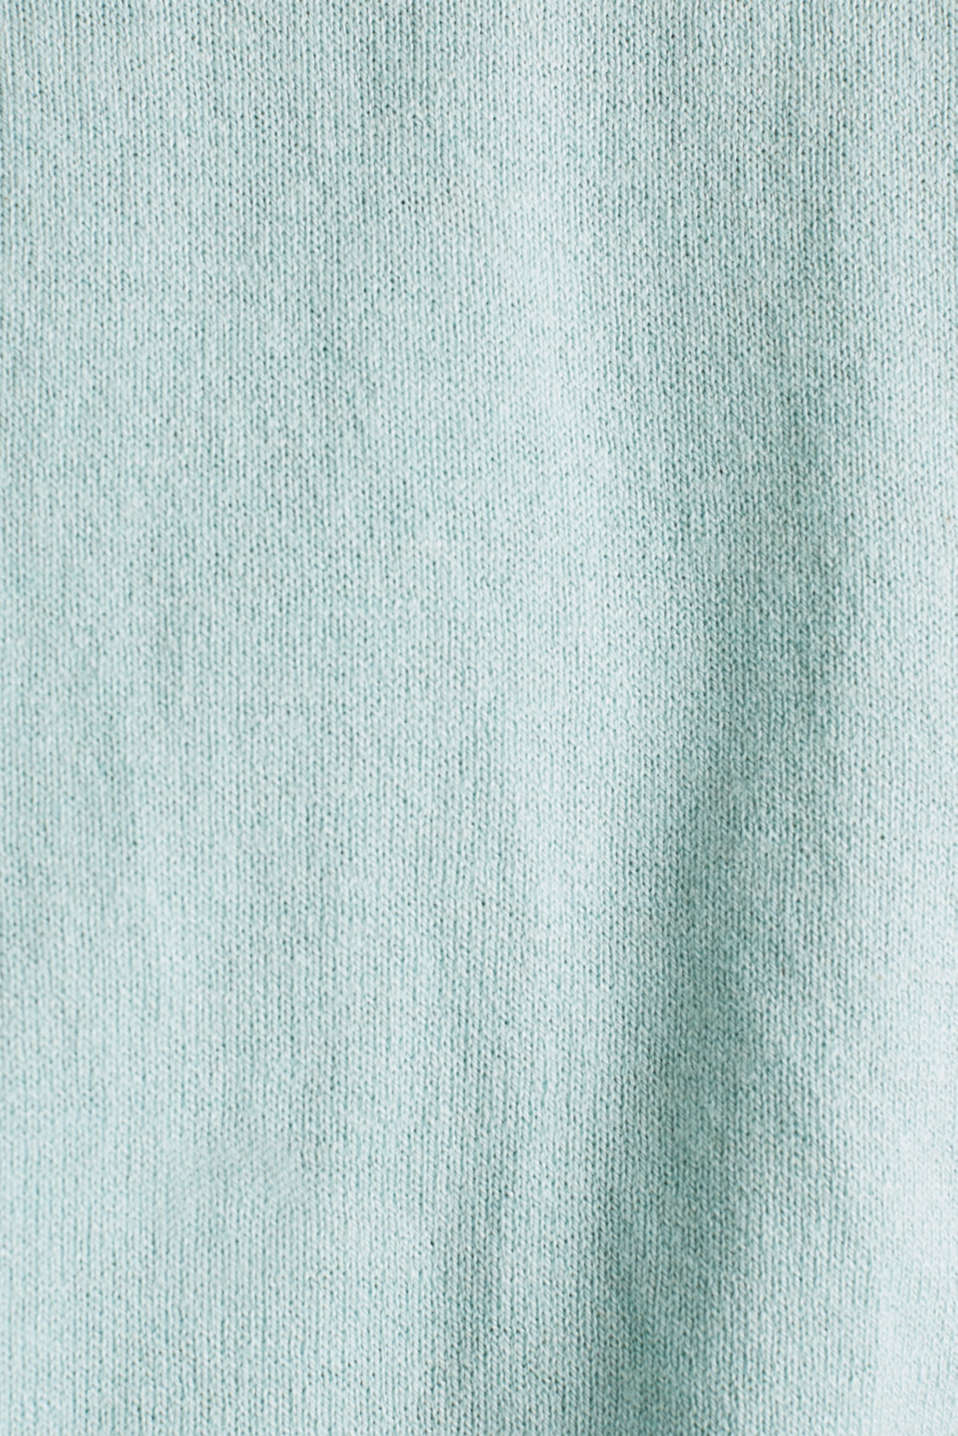 With linen: Jumper with open-work patterned details, LIGHT AQUA GREEN, detail image number 3